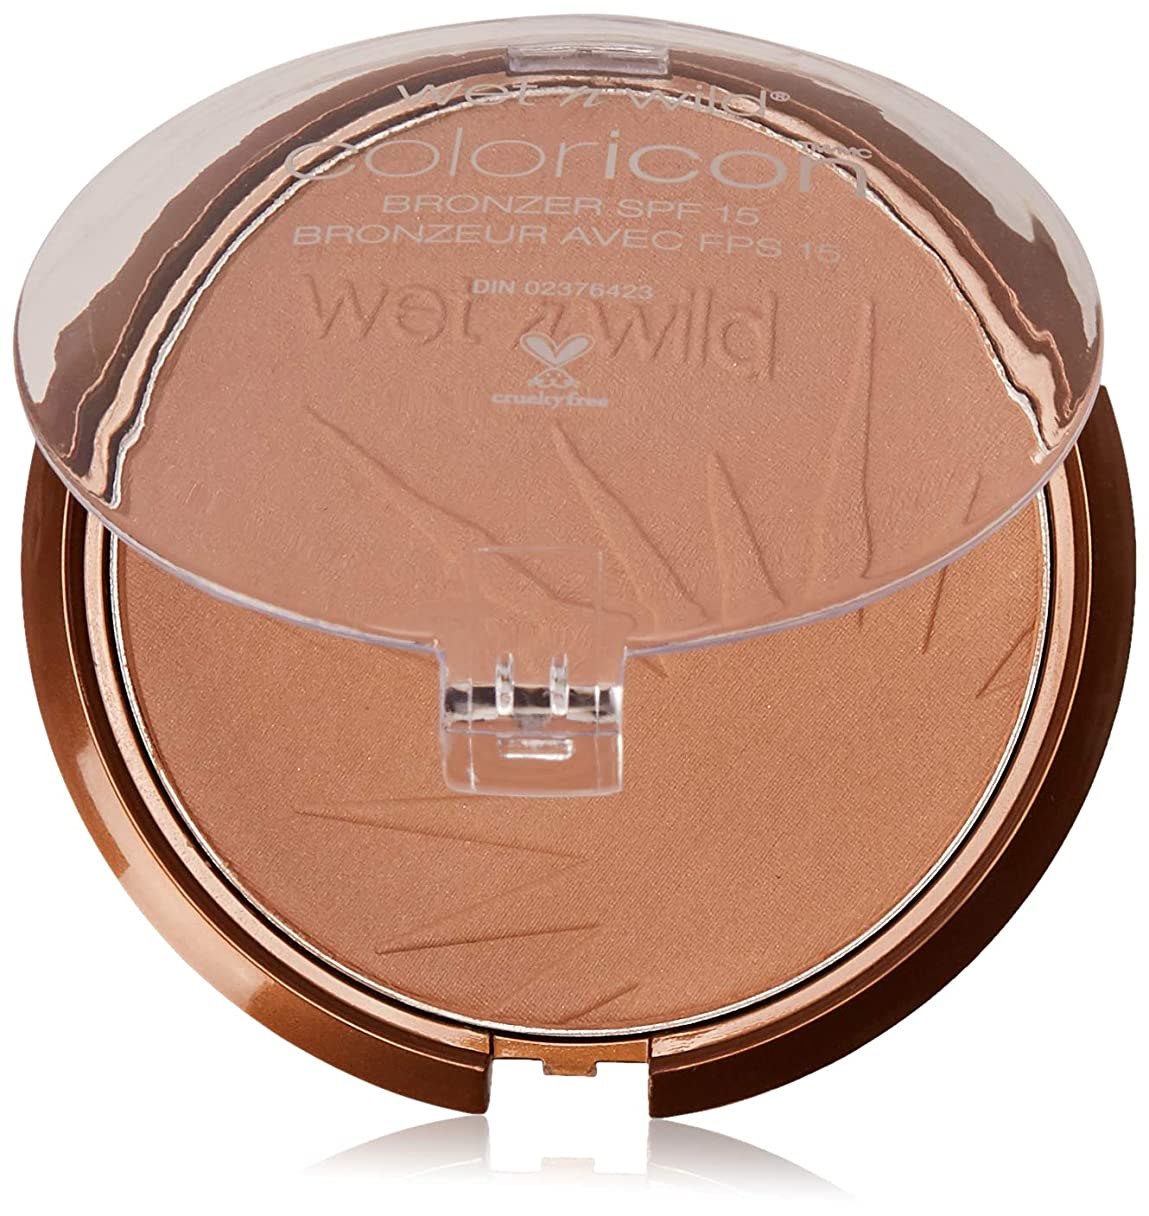 ポスト印象派シアーレモンWET N WILD Color Icon Bronzer SPF 15 - Ticket to Brazil